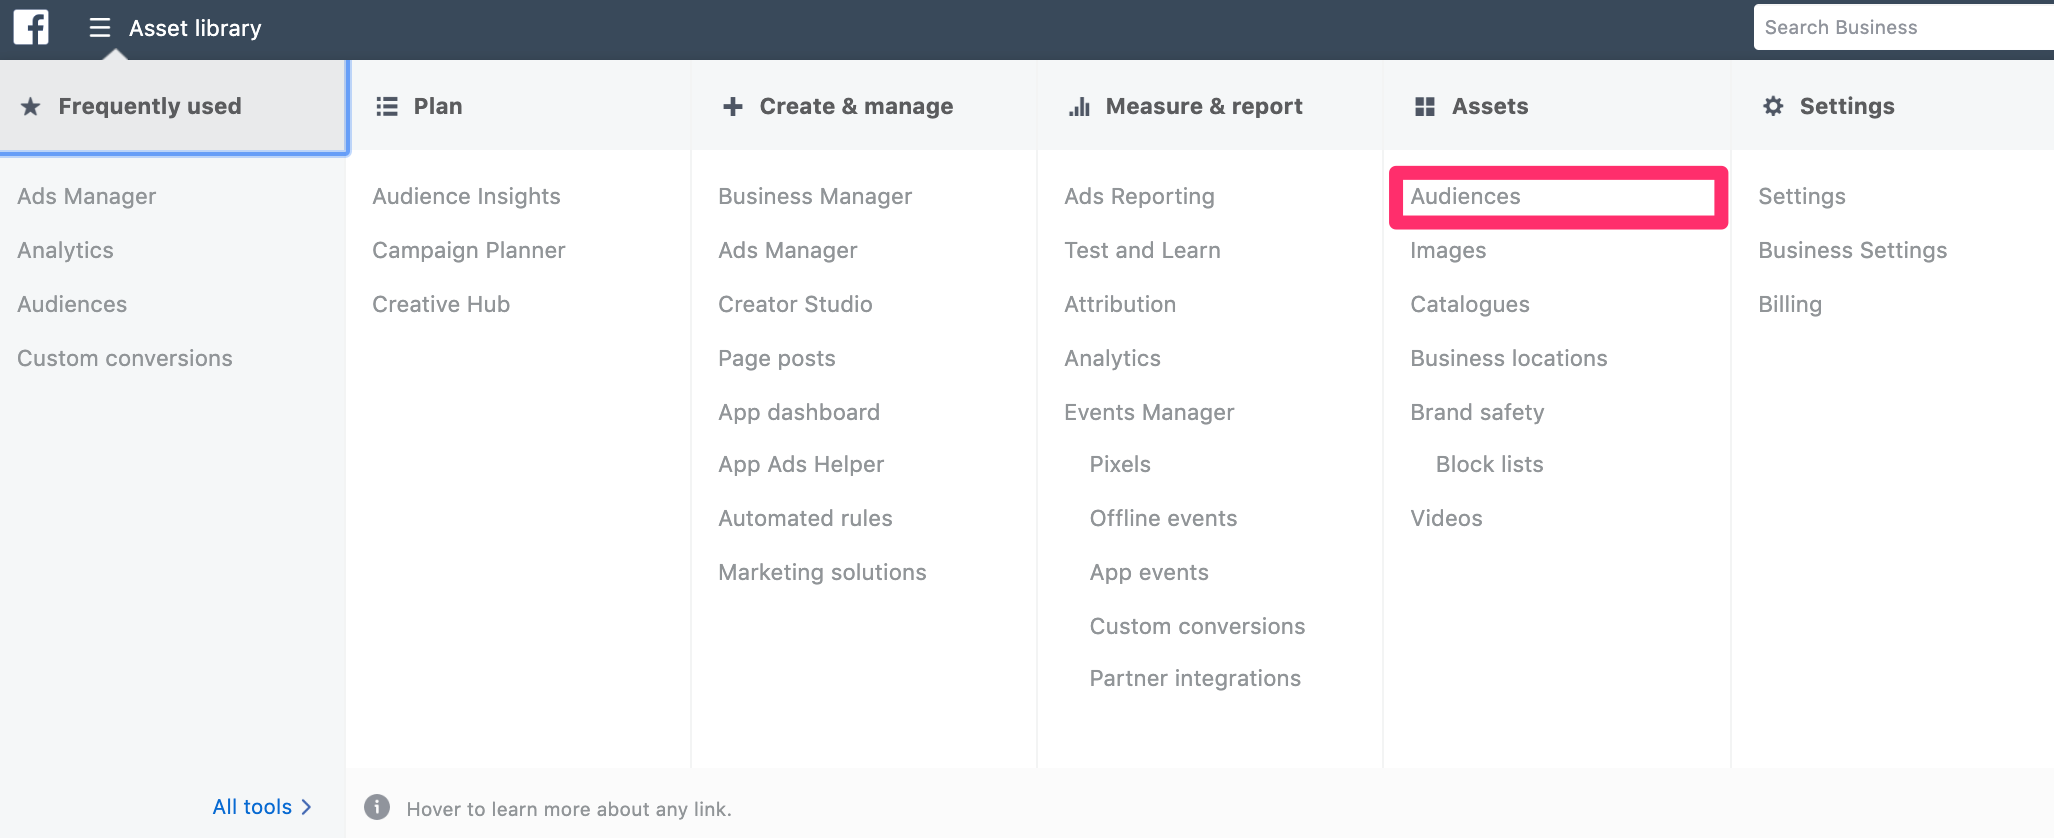 Choosing Audiences in Facebook business manager